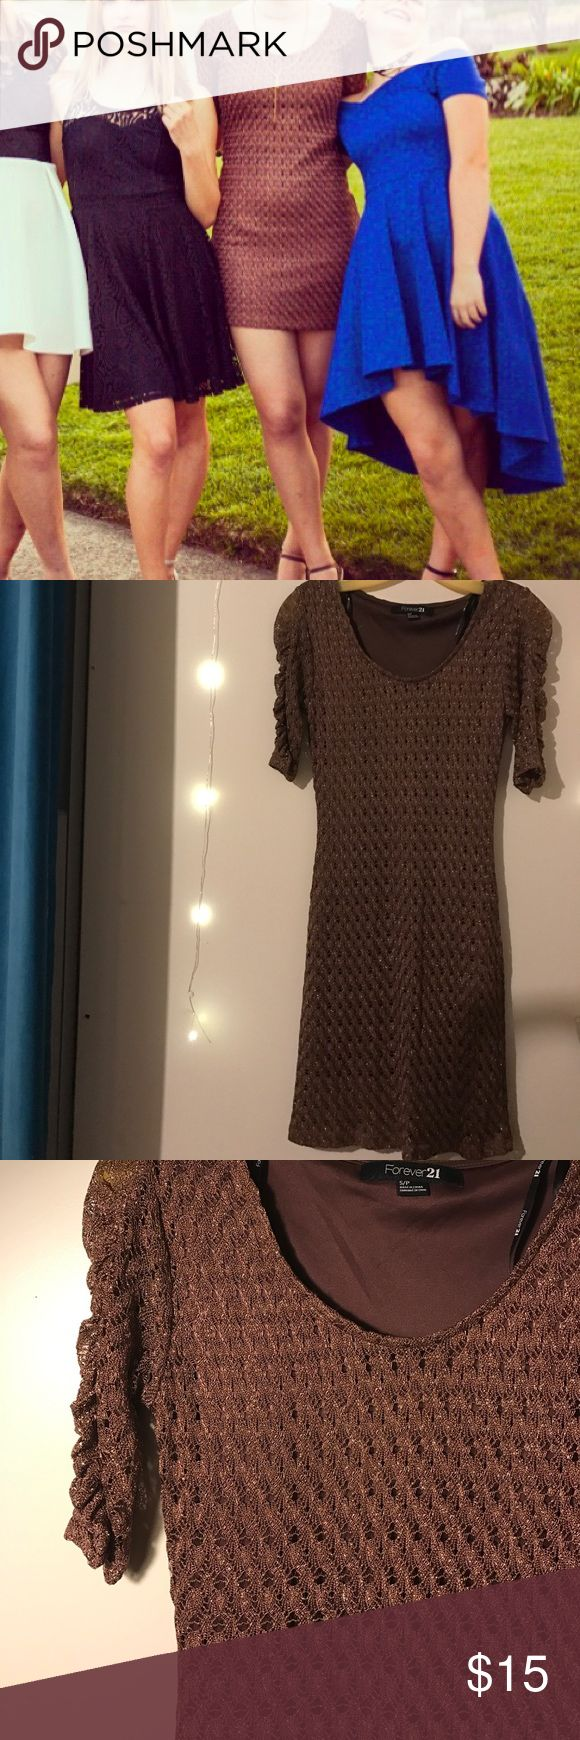 Sparkly mini dress Chocolate sparkly mini dress. Super cute, fitted and flattering, gold sparkles. Only worn once to gala. Very comfy, shows off curves. Forever 21 Dresses Mini